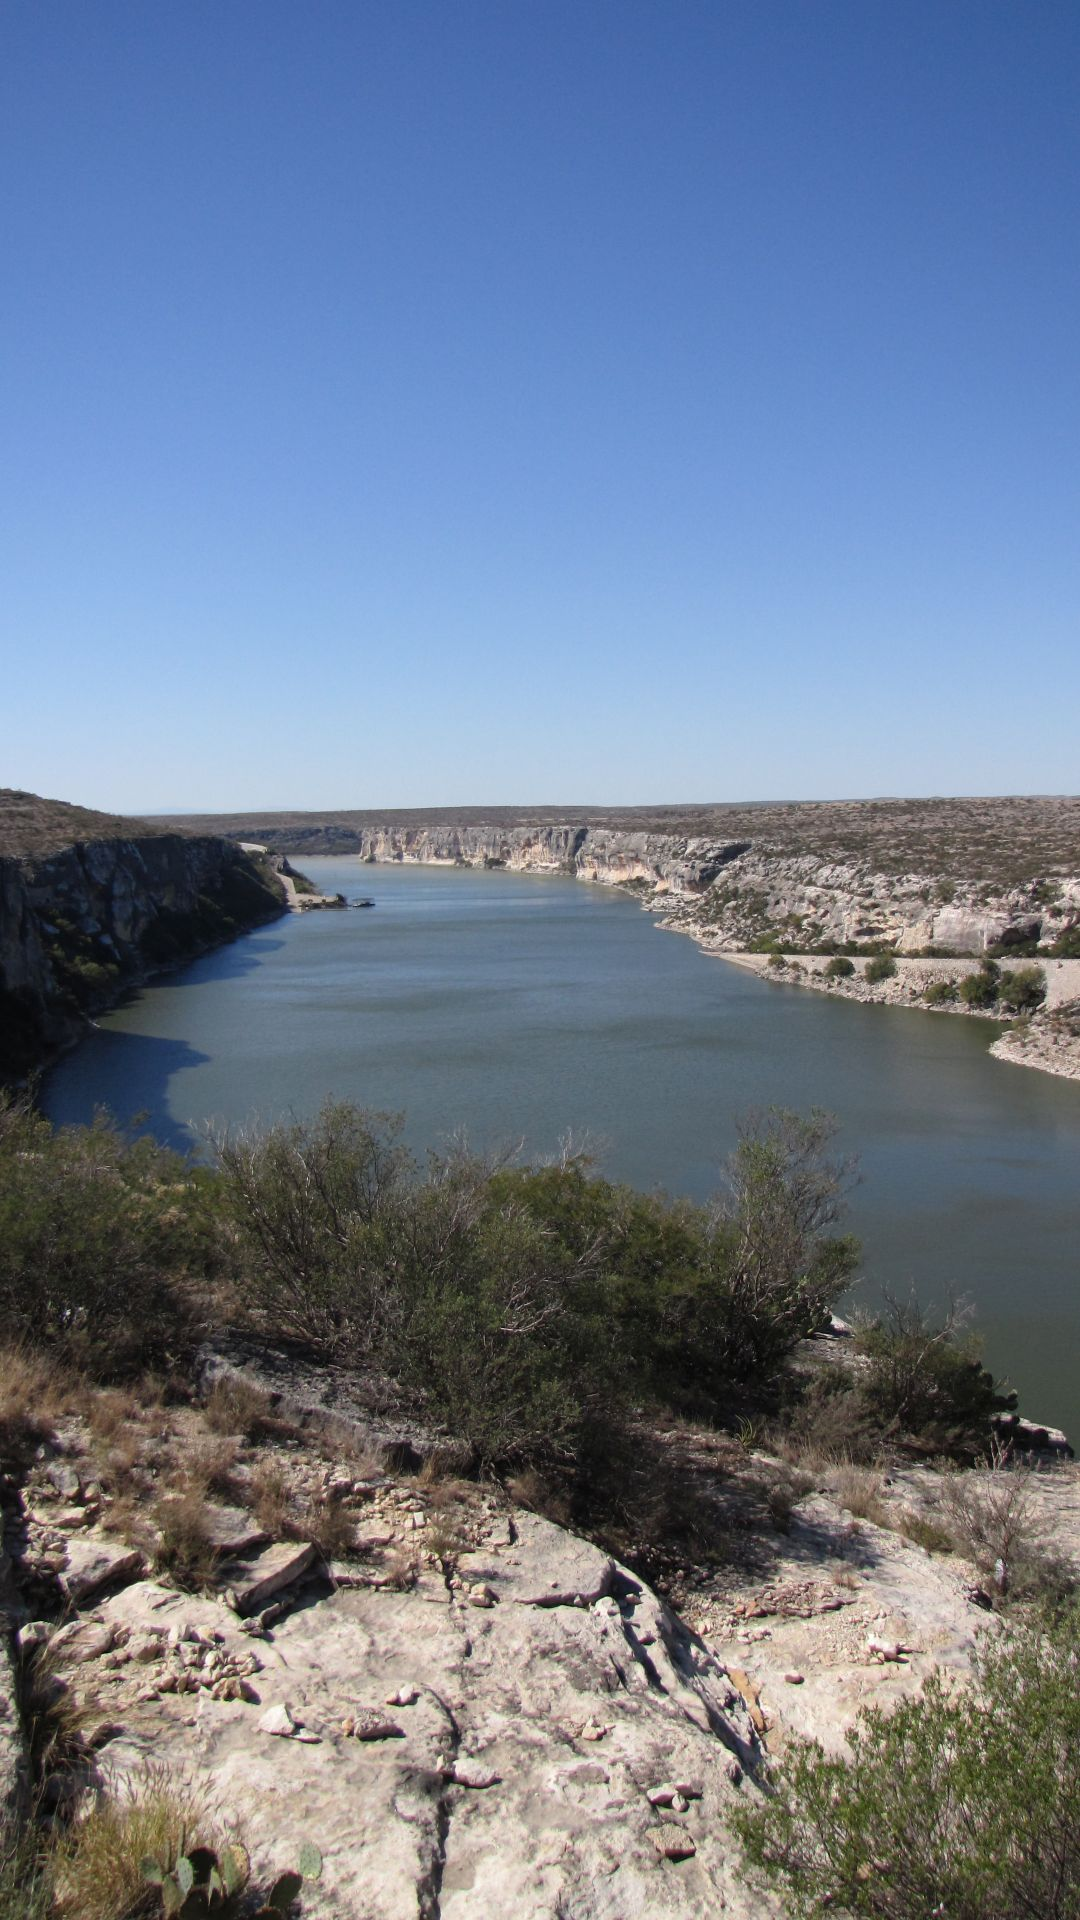 Nr Langtry, TX, USA - the Pecos River close to its joining the Rio Grande